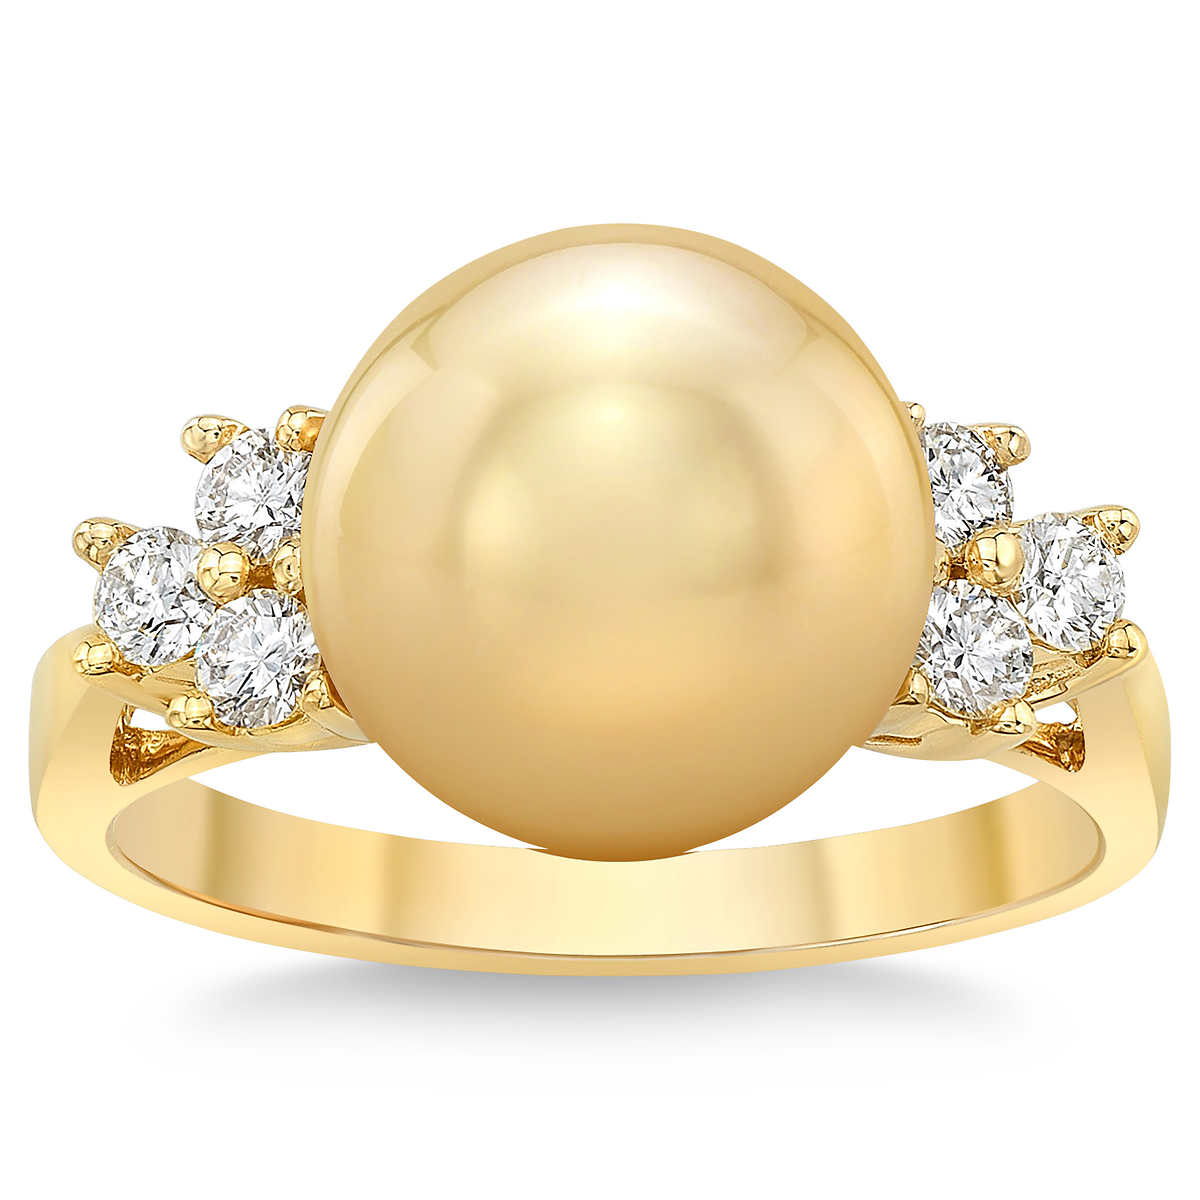 fcf5608c0c599 Golden South Sea 10-11mm Pearl & Diamond 18kt Yellow Gold Ring